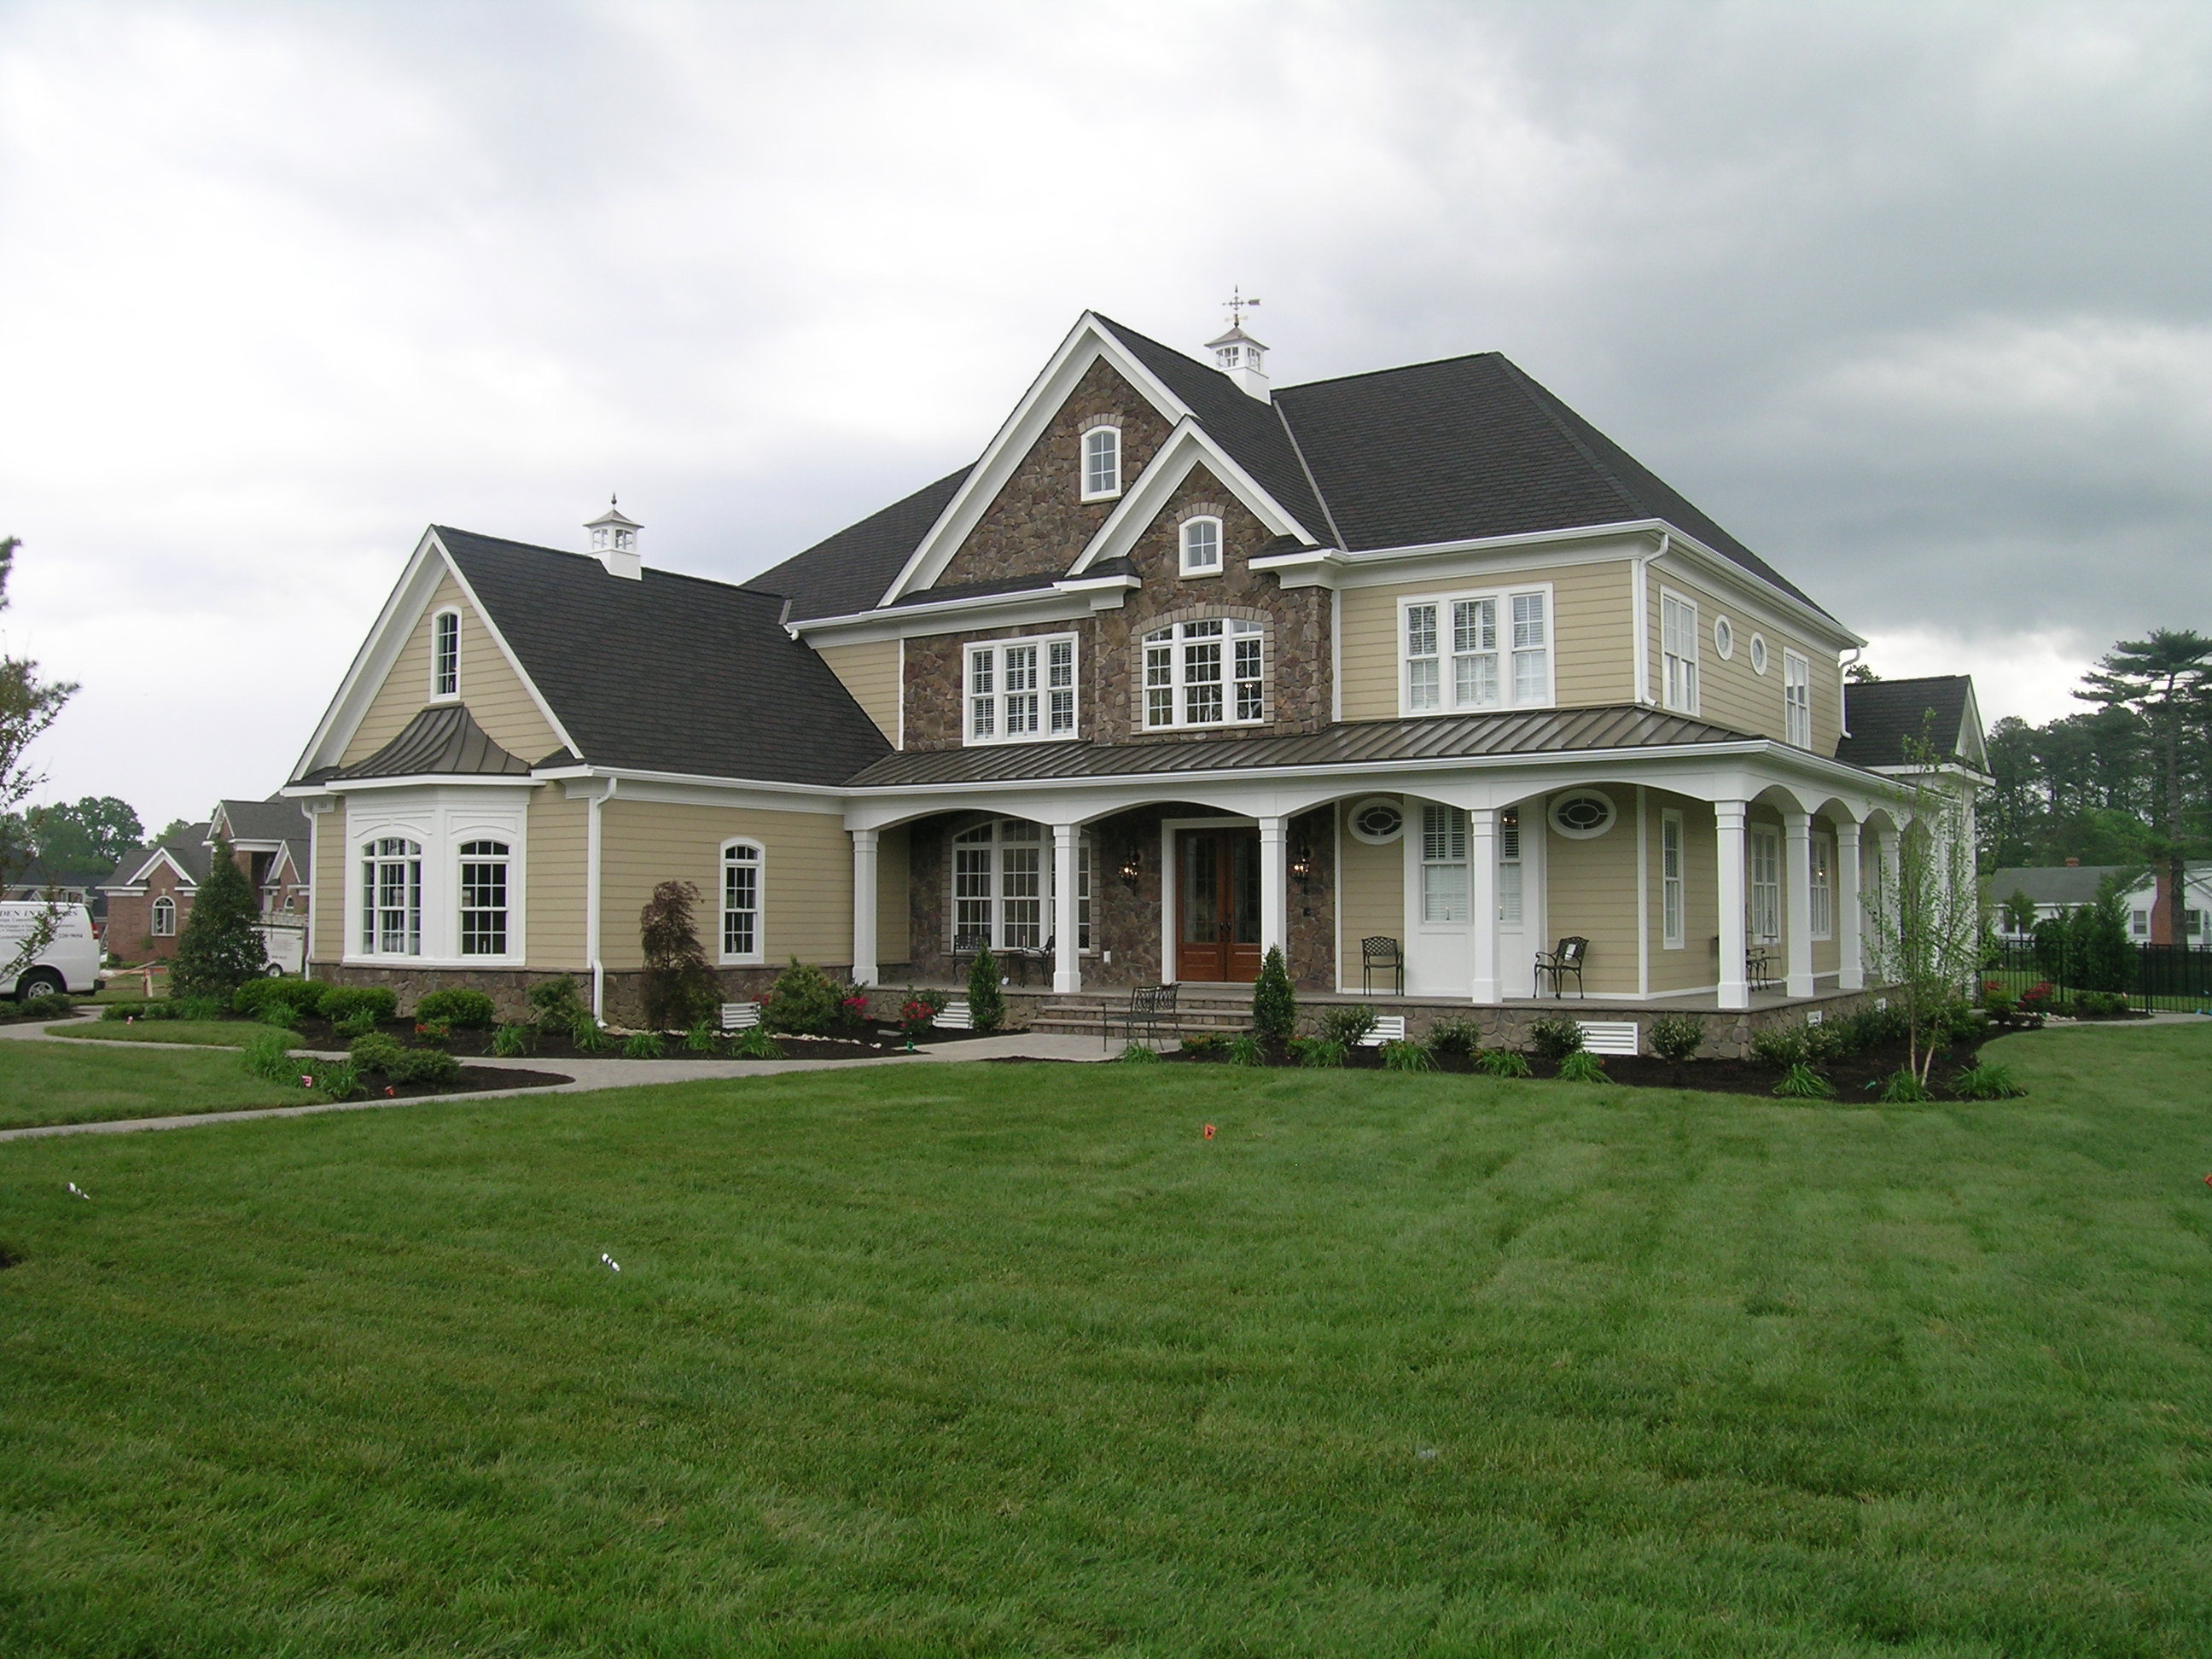 Taylor farms neighborhood spotlight yorktown va mr for Beautiful luxury houses